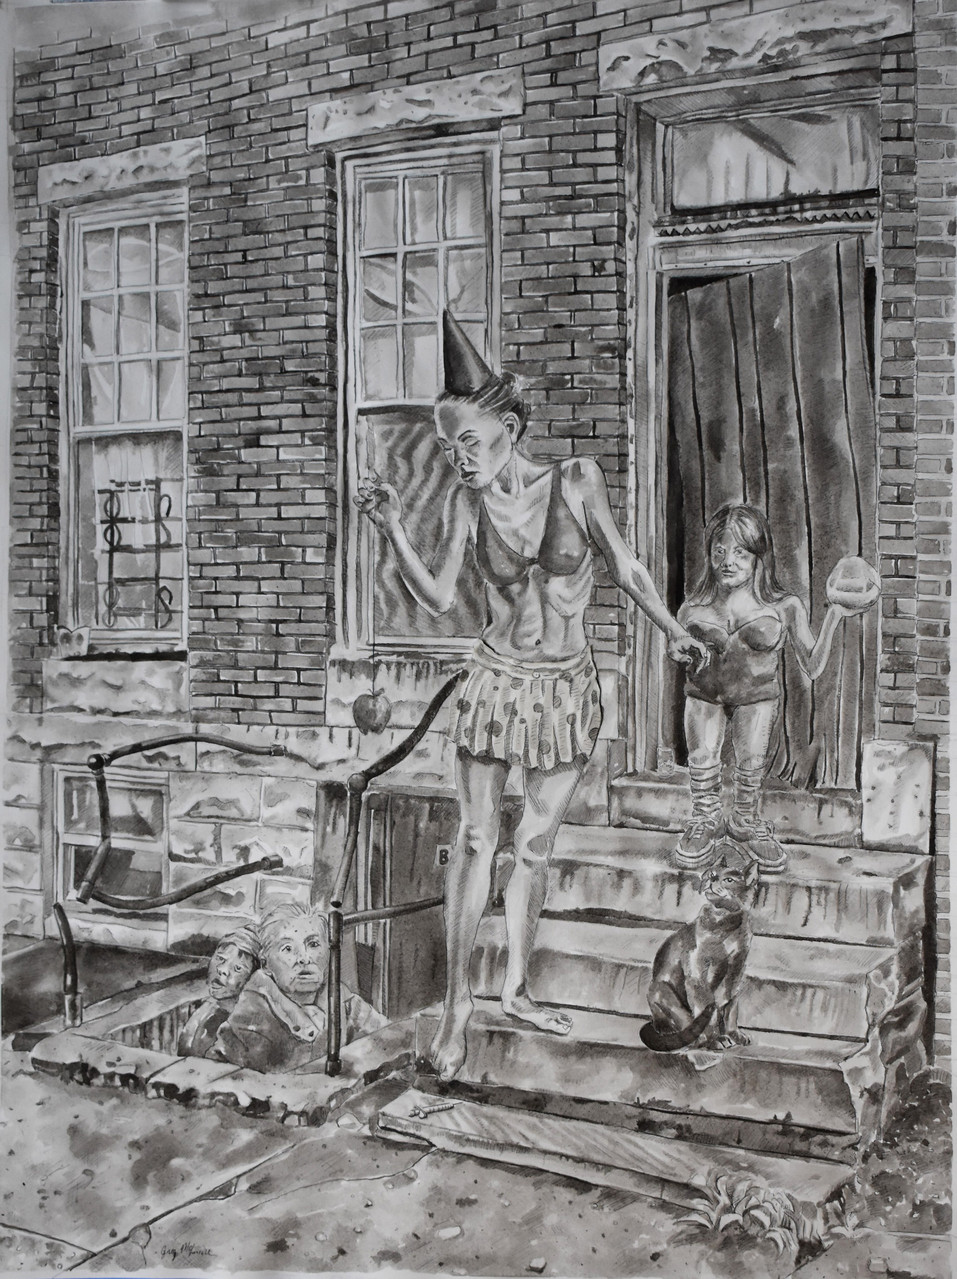 Gregory McLemore (Baltimore, MD), On the Stoop I: Taunting the Basement Dwellers, Unaware of Danger,